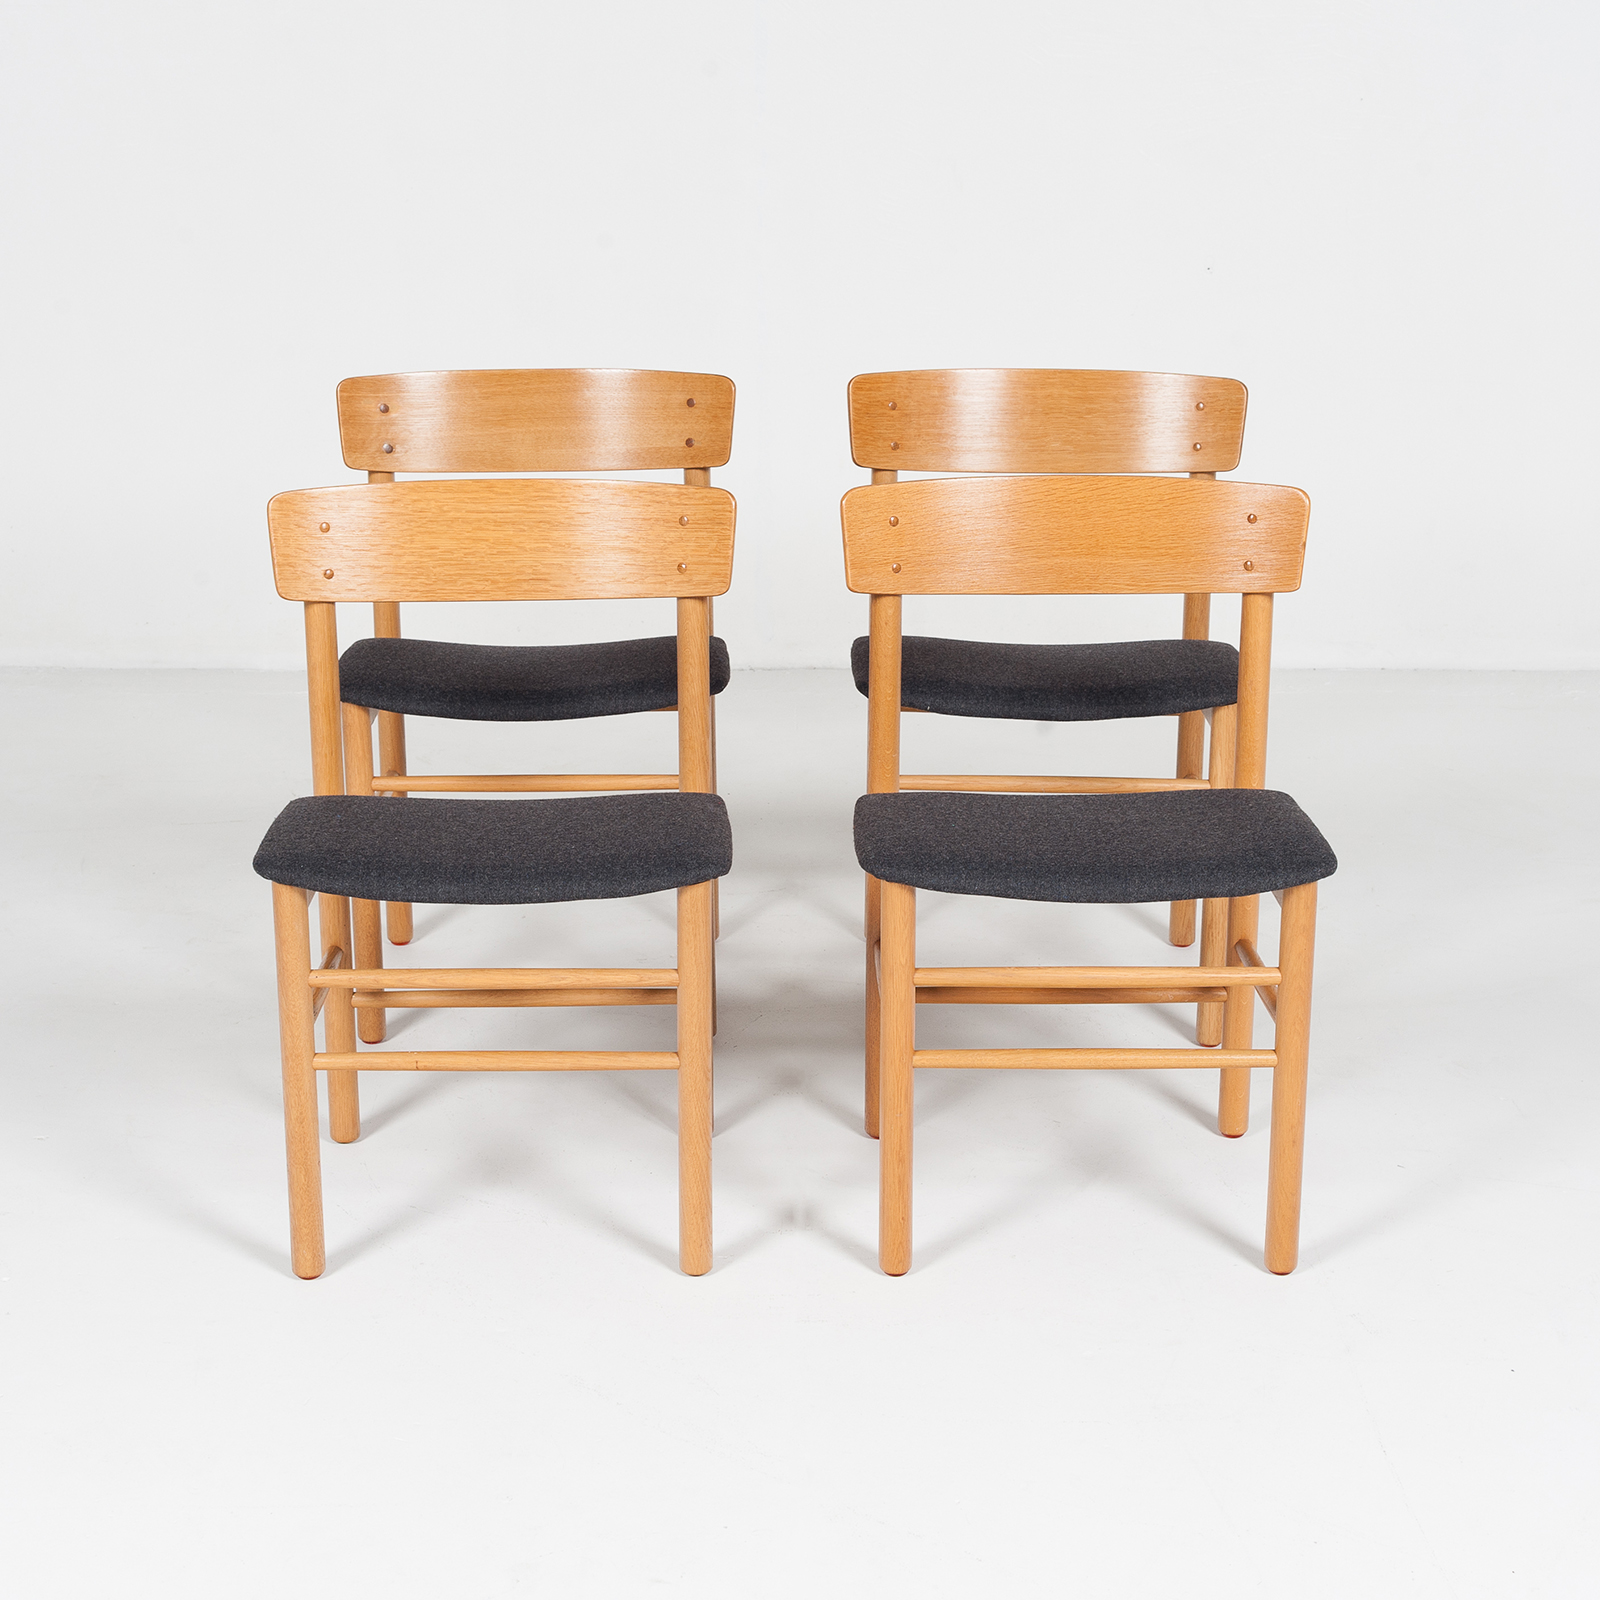 Set Of 4 Shaker Style Dining Chairs By Farstrup In Oak, 1960s, Denmark74